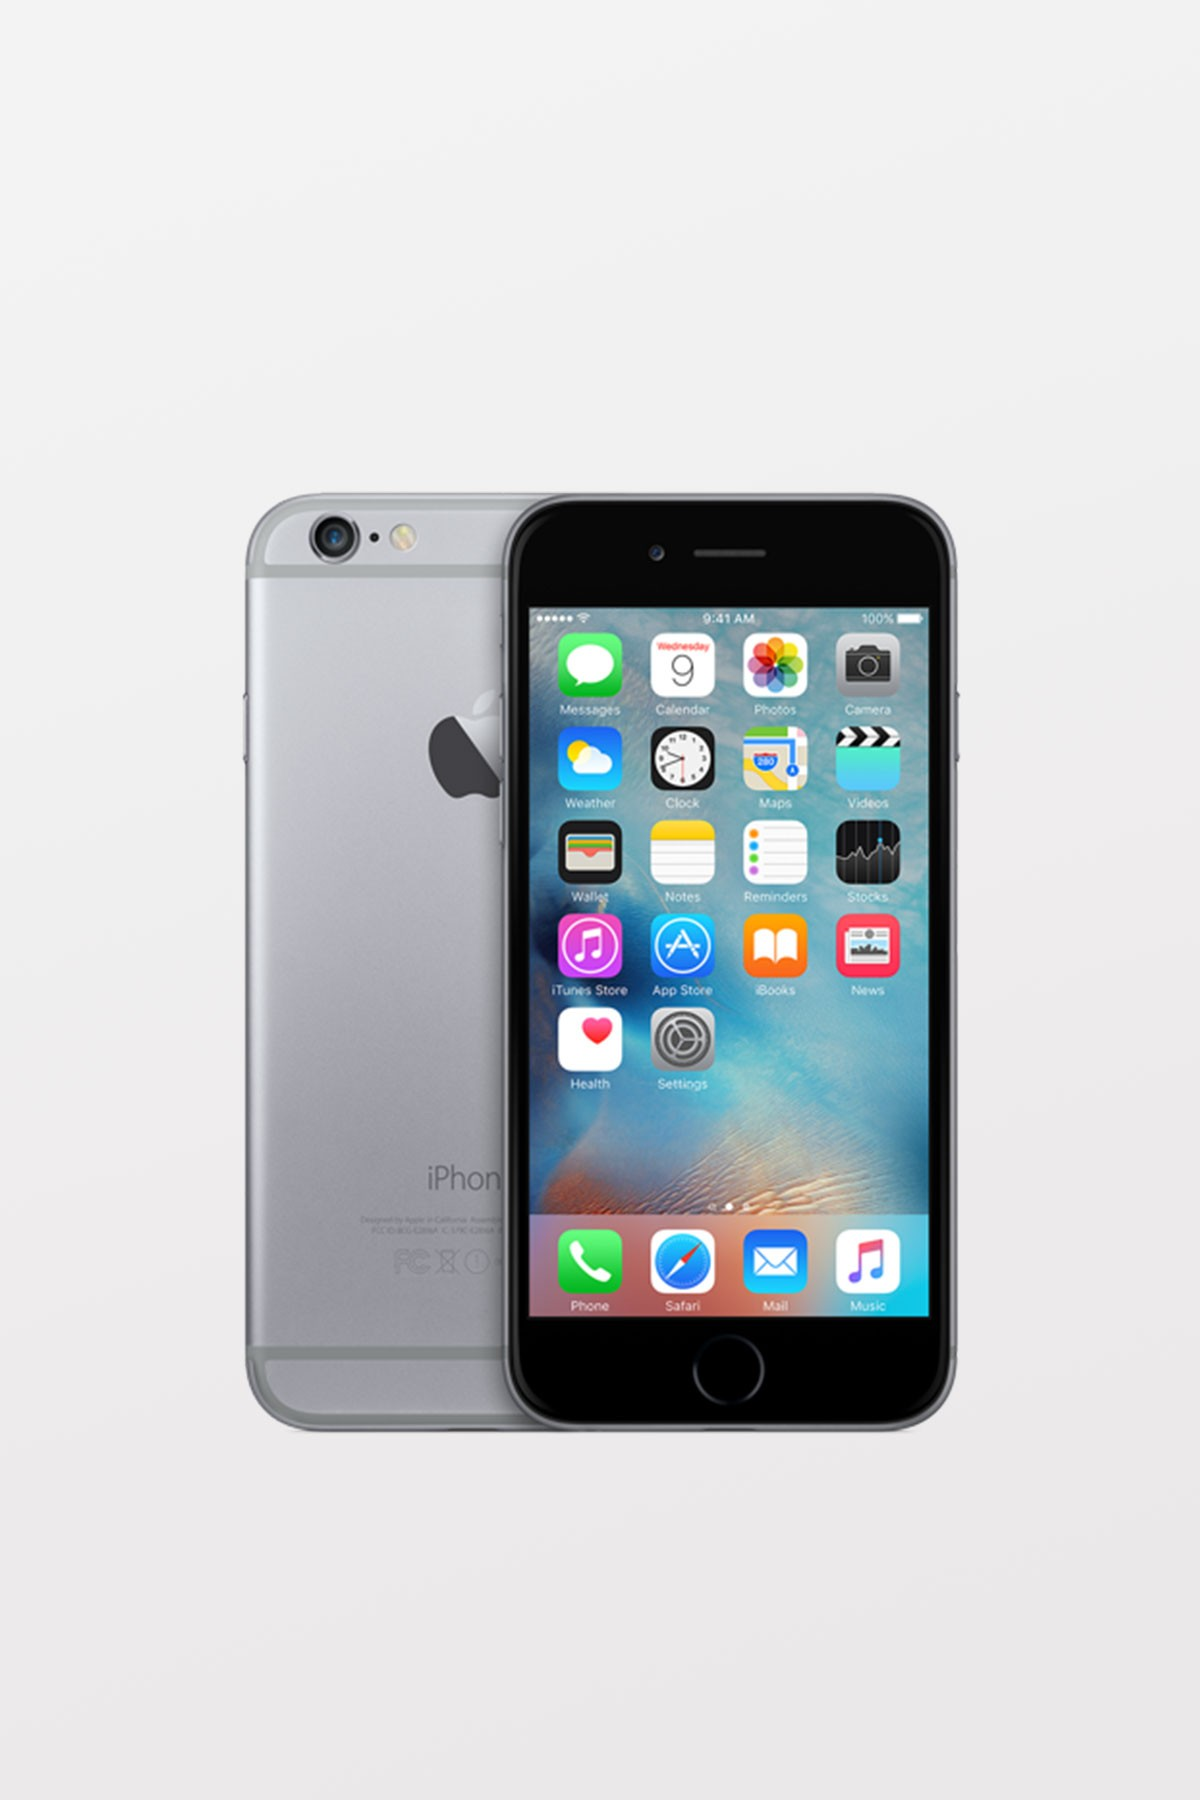 apple iphone 6 64gb space grey refurbished iphone 6s 6s plus iphone melbourne. Black Bedroom Furniture Sets. Home Design Ideas